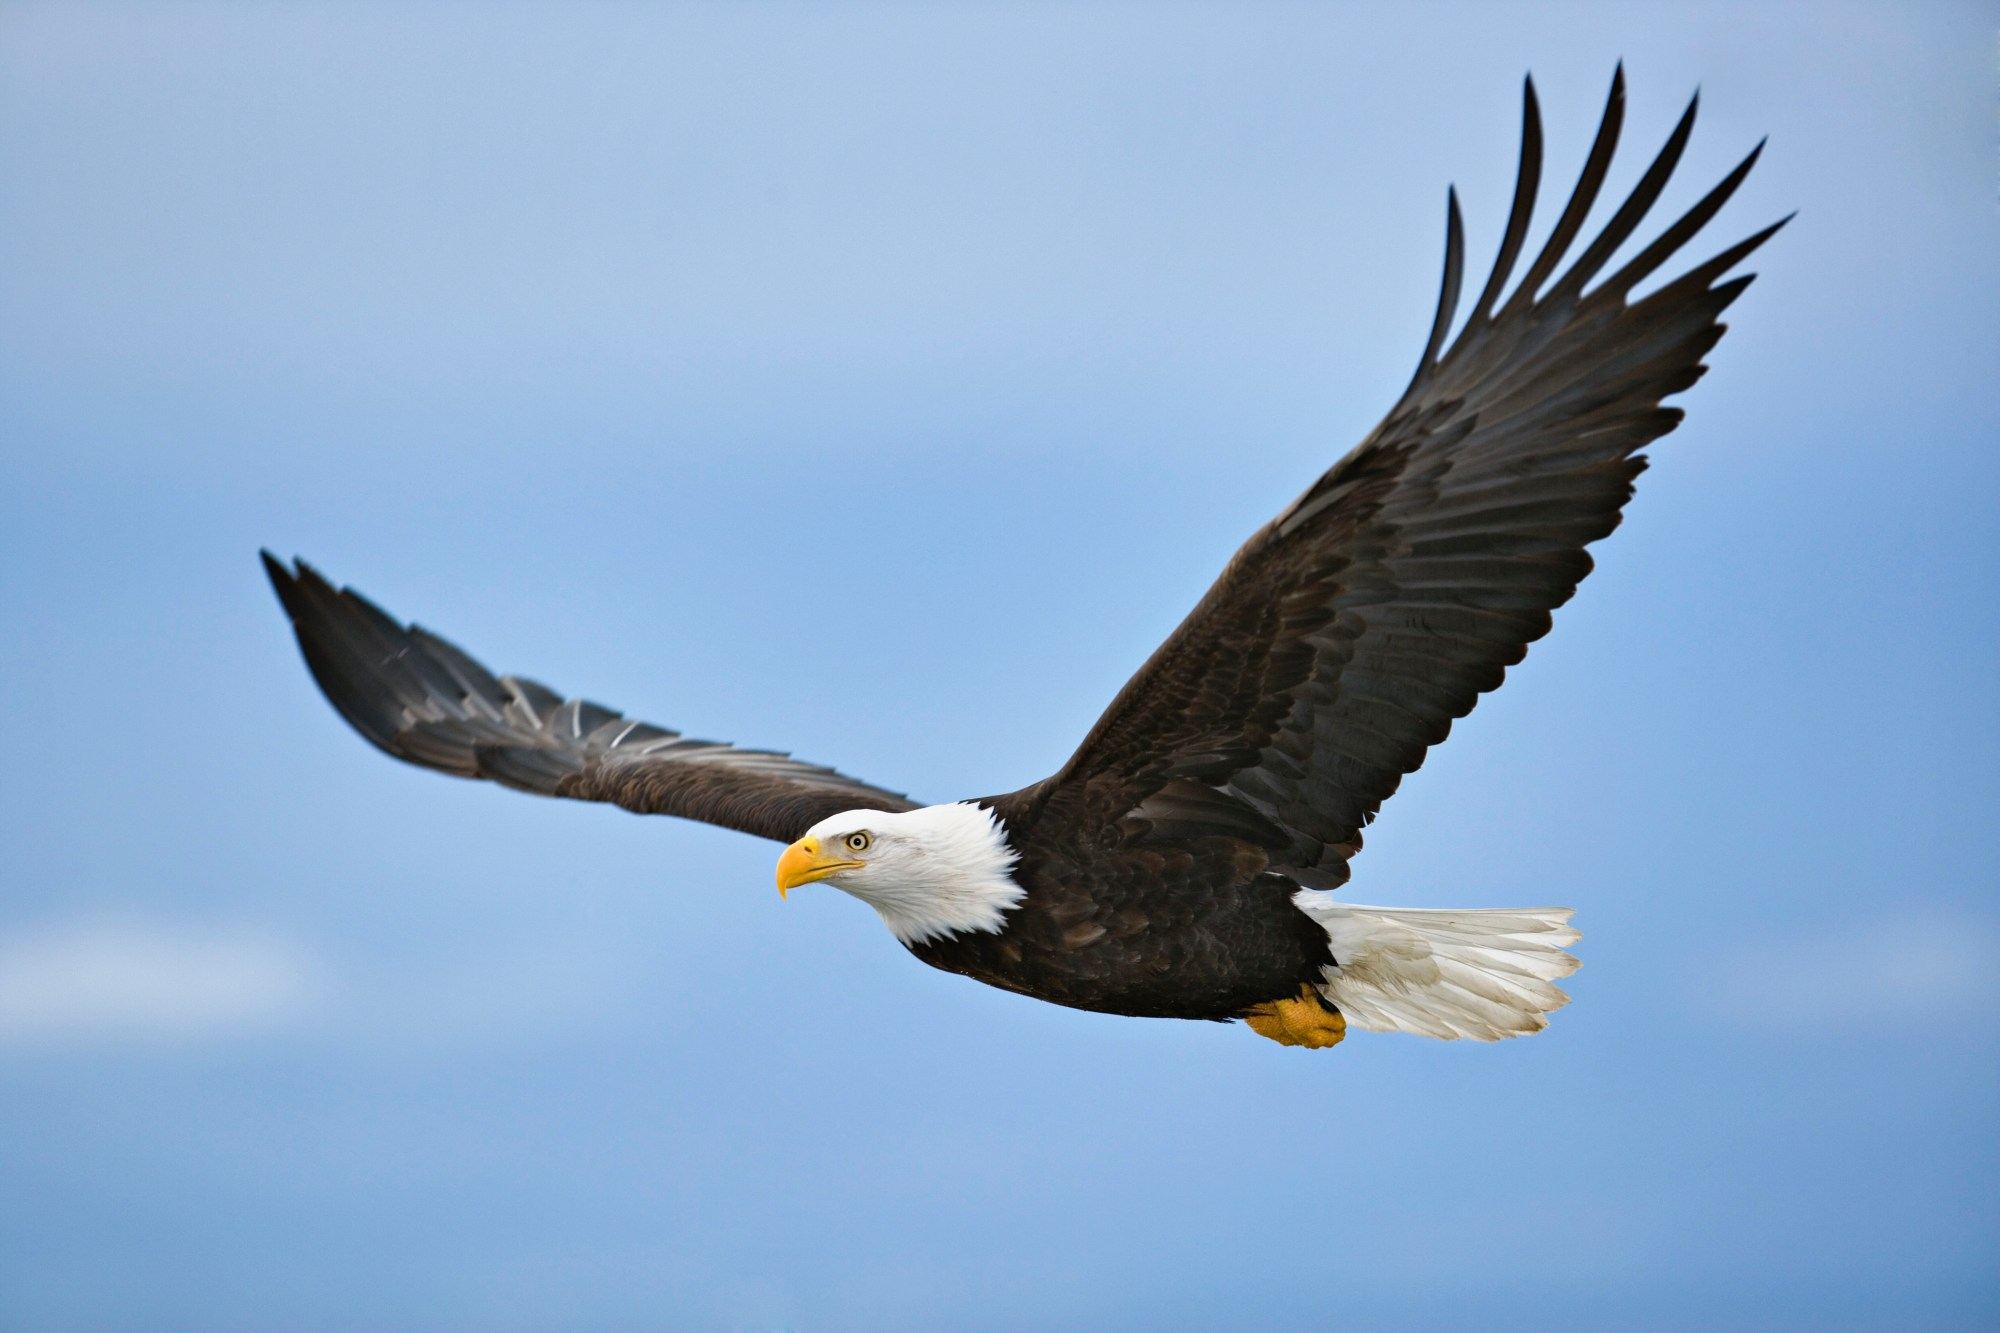 A bald eagle is seen a file photo. (iStock/Getty Images Plus)